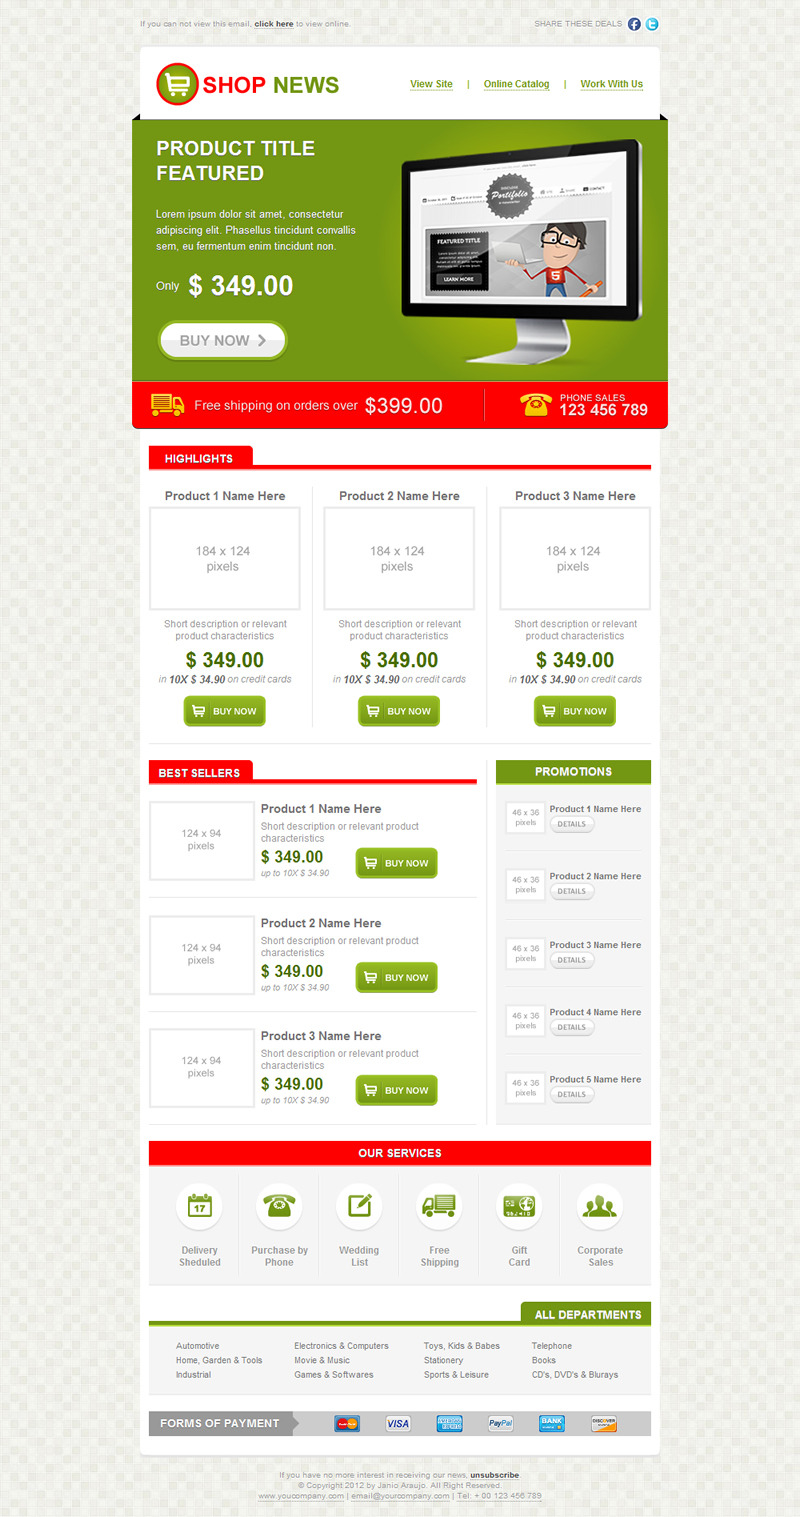 Shop News Email Template